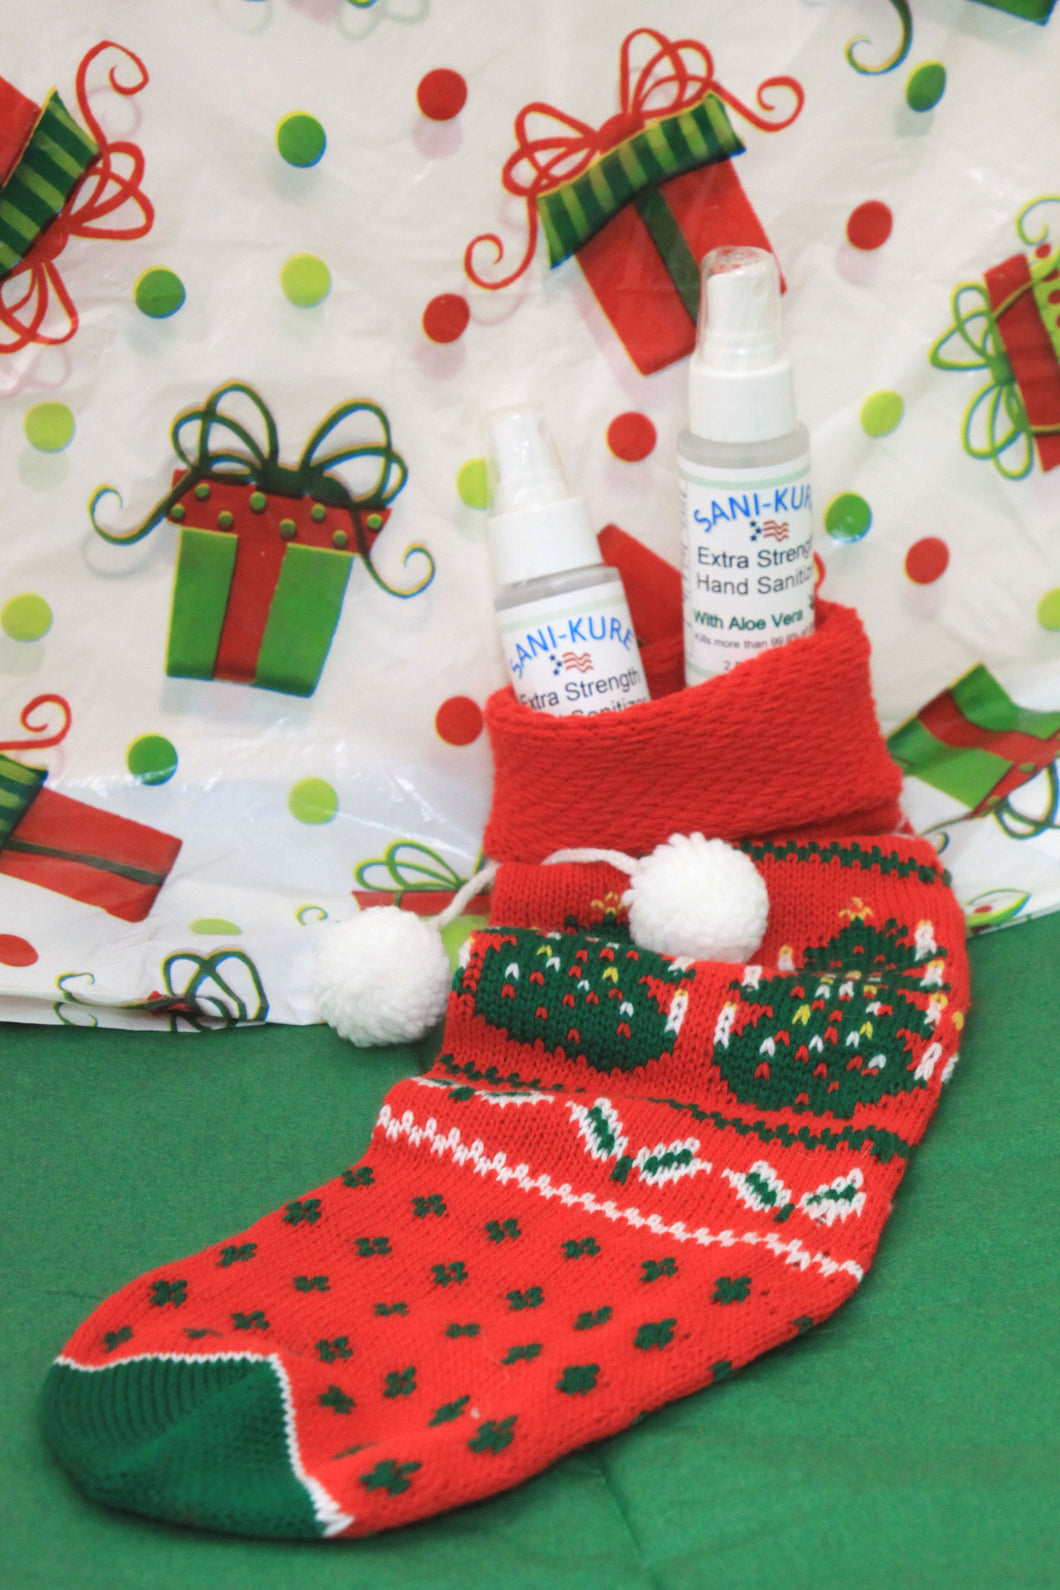 Perfect Stocking Stuffer! 2 oz Hand Sanitizer Spray, Extra Strength w/ Aloe Vera for Moisturizing, Single Bottle.